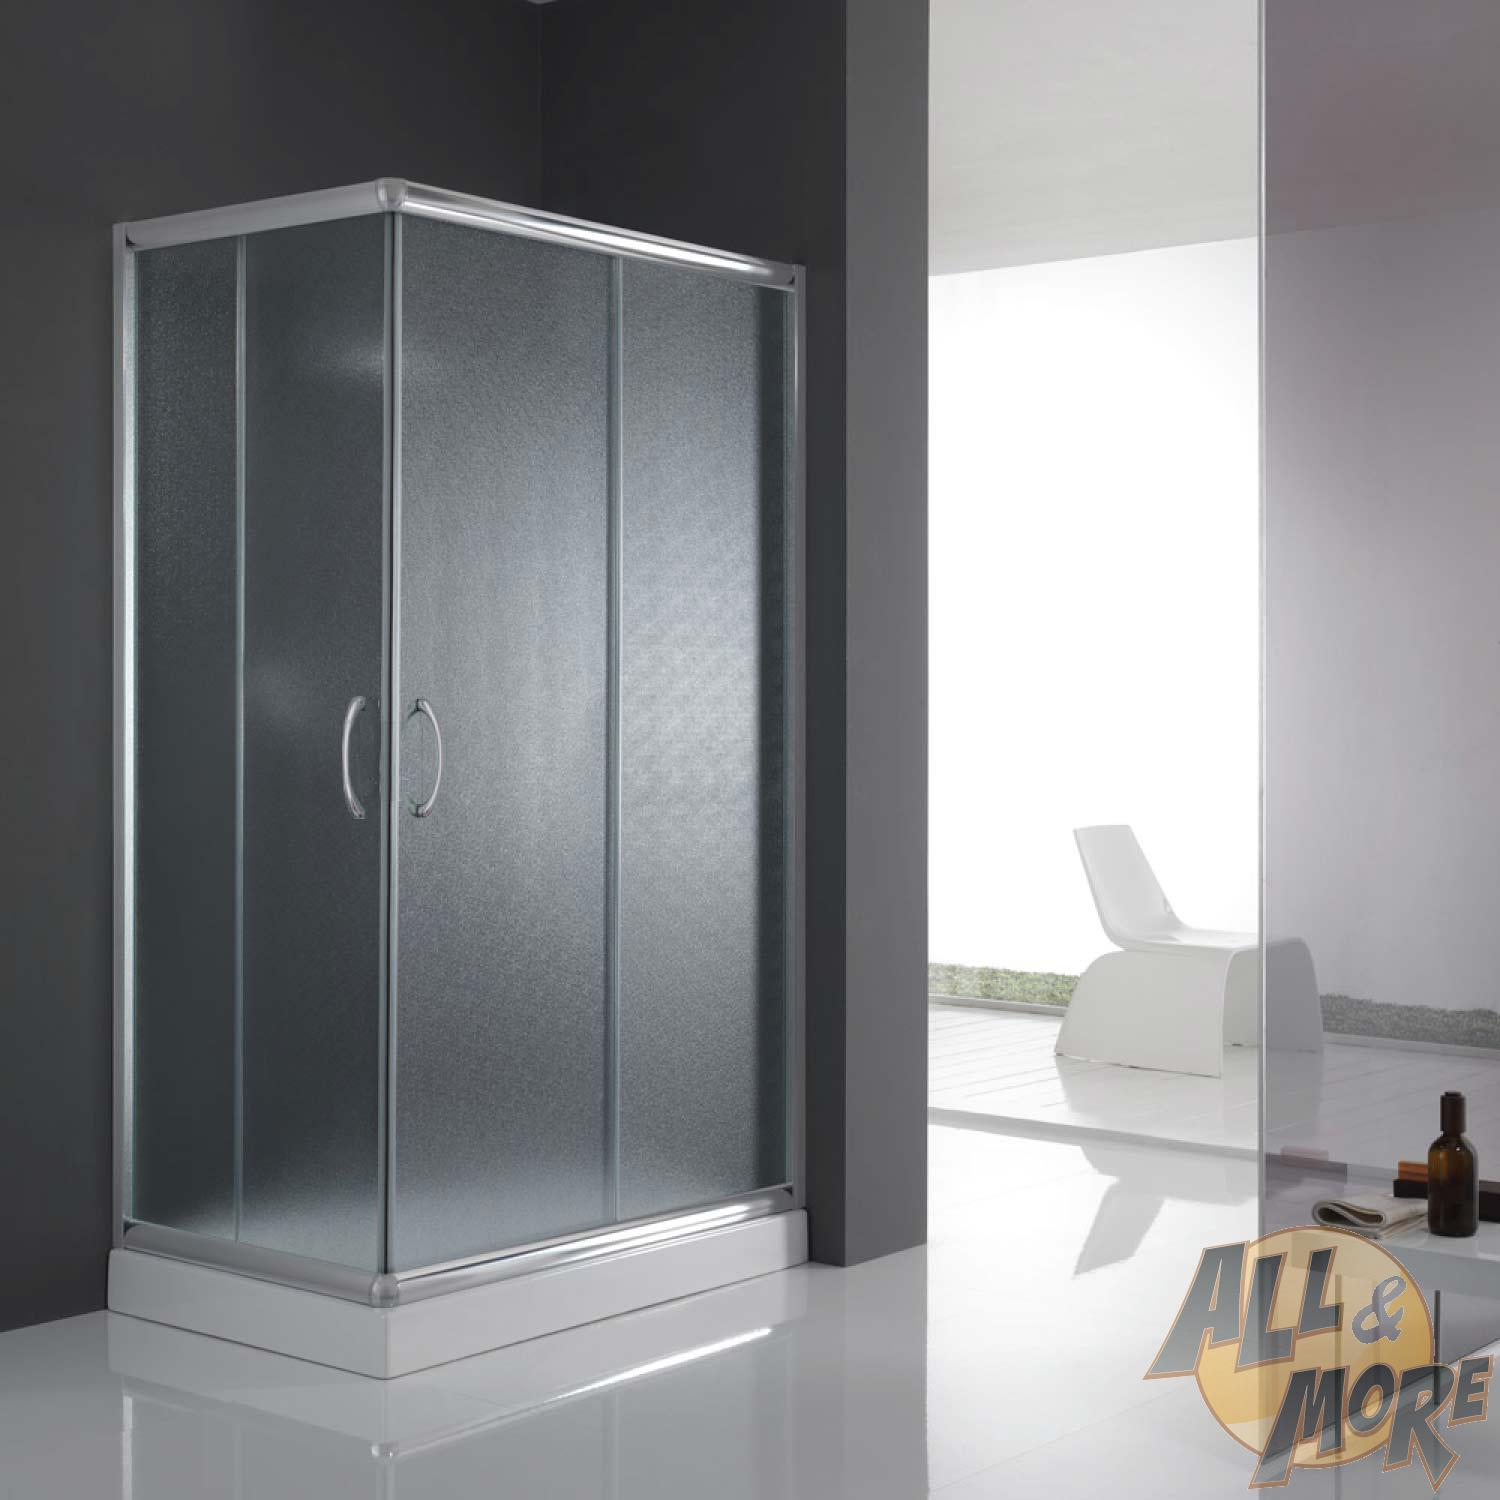 cabine de douche paroi de douche 120x90 h185 cm verre. Black Bedroom Furniture Sets. Home Design Ideas